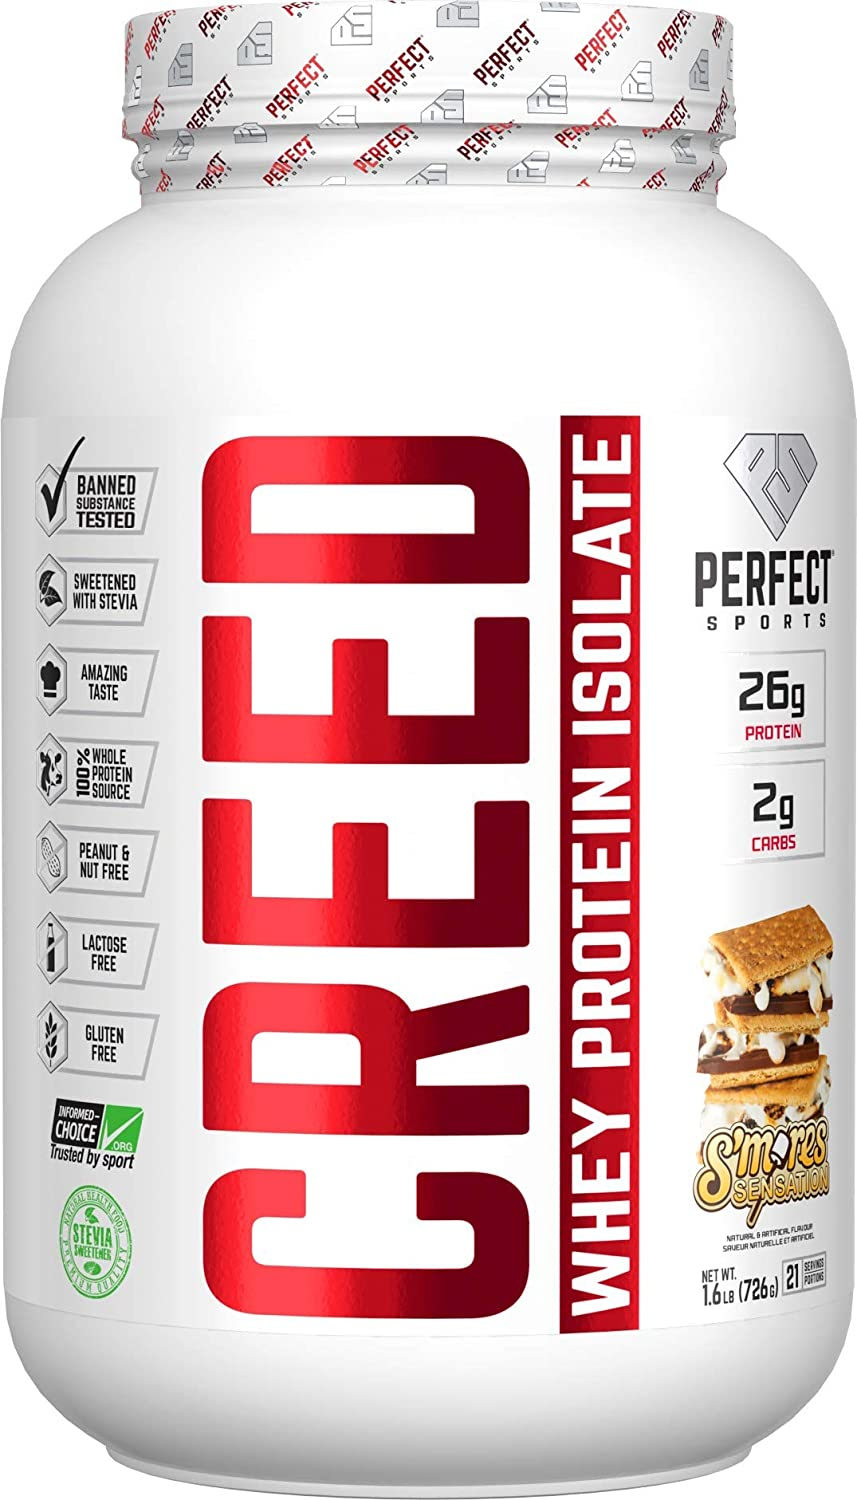 Max 68% OFF PERFECT SPORTS Creed Whey Isolate g 725 Discount is also underway Sensation S'Mores